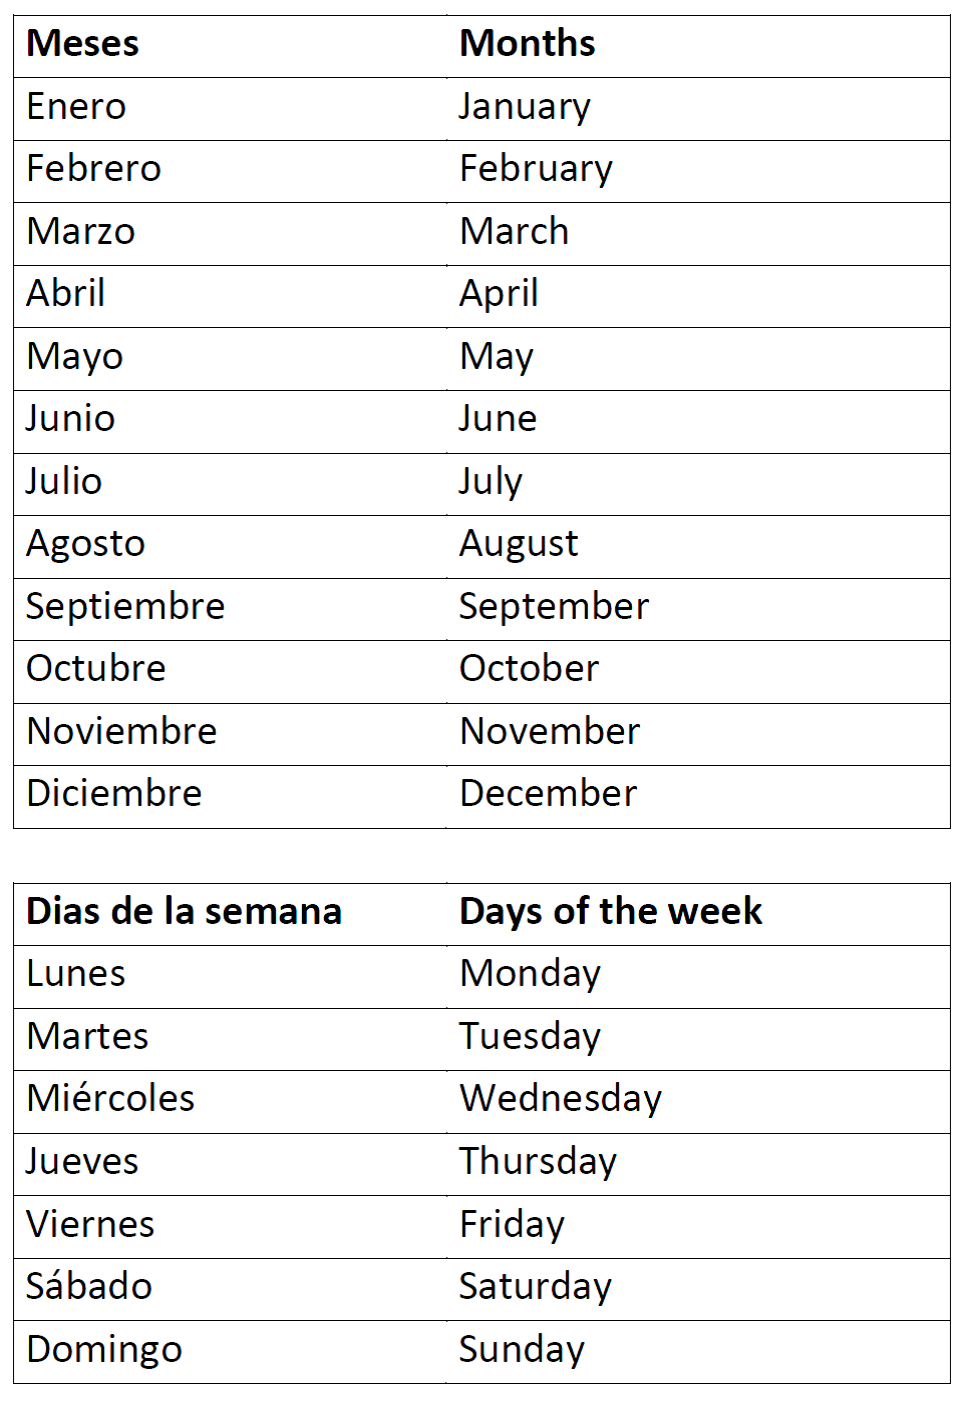 Months Of The Year And Days Of The Week | Tutoring- Spanish | Free Printable Spanish Worksheets Days Of The Week